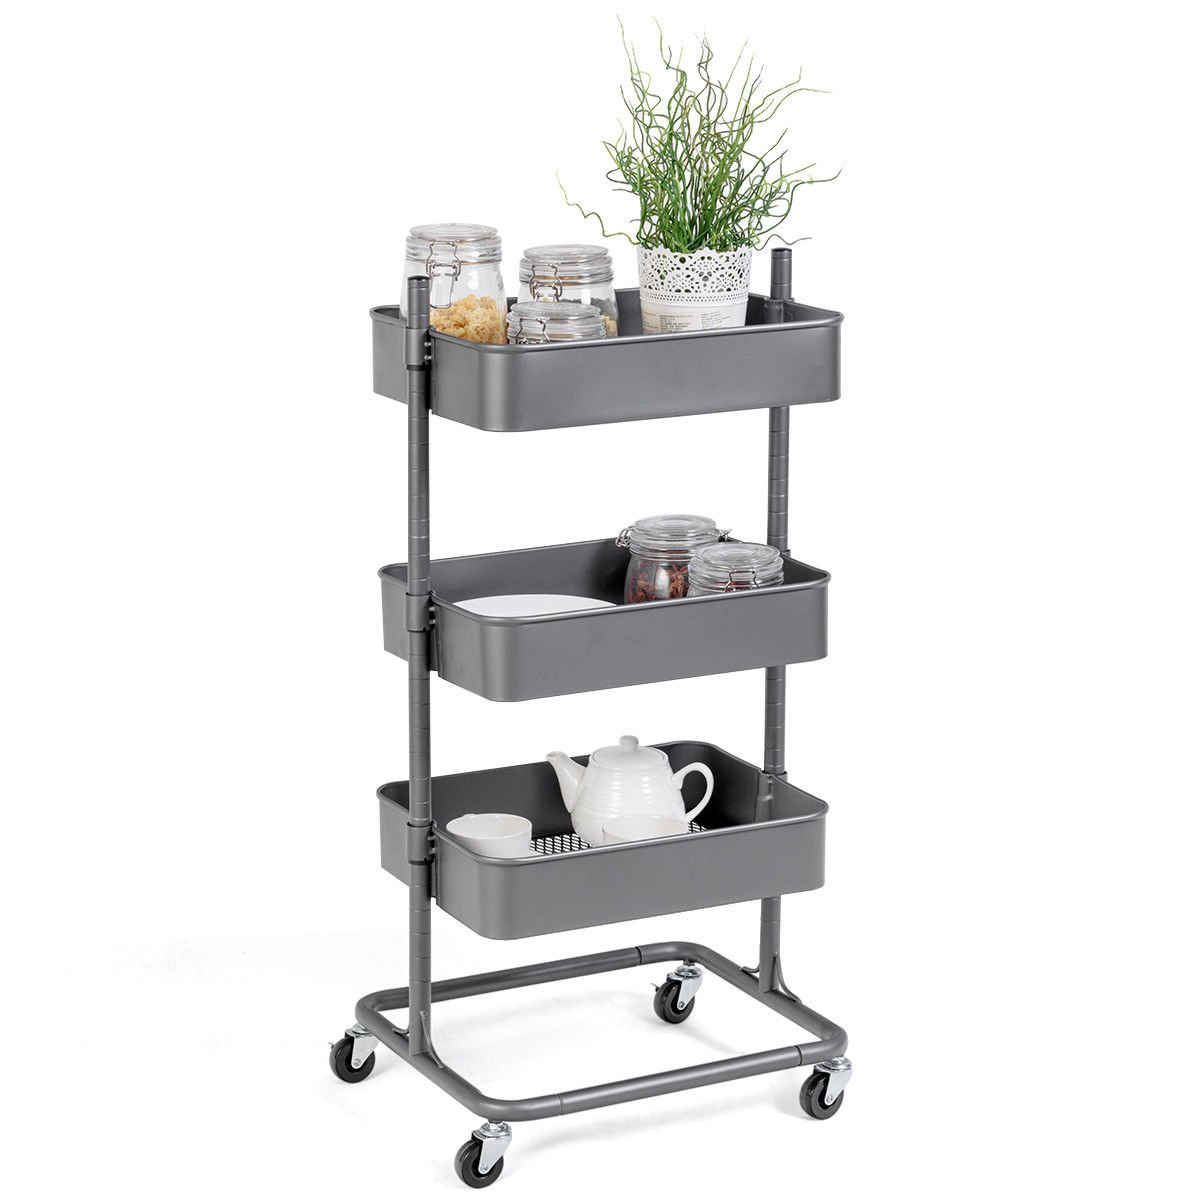 Giantex Rolling Utility Cart Mobile Storage Organizer Multifunctional Home Office Storage Trolley Serving Cart w Metal Mesh Shelves Lockable Wheels Gray, 3-Tier